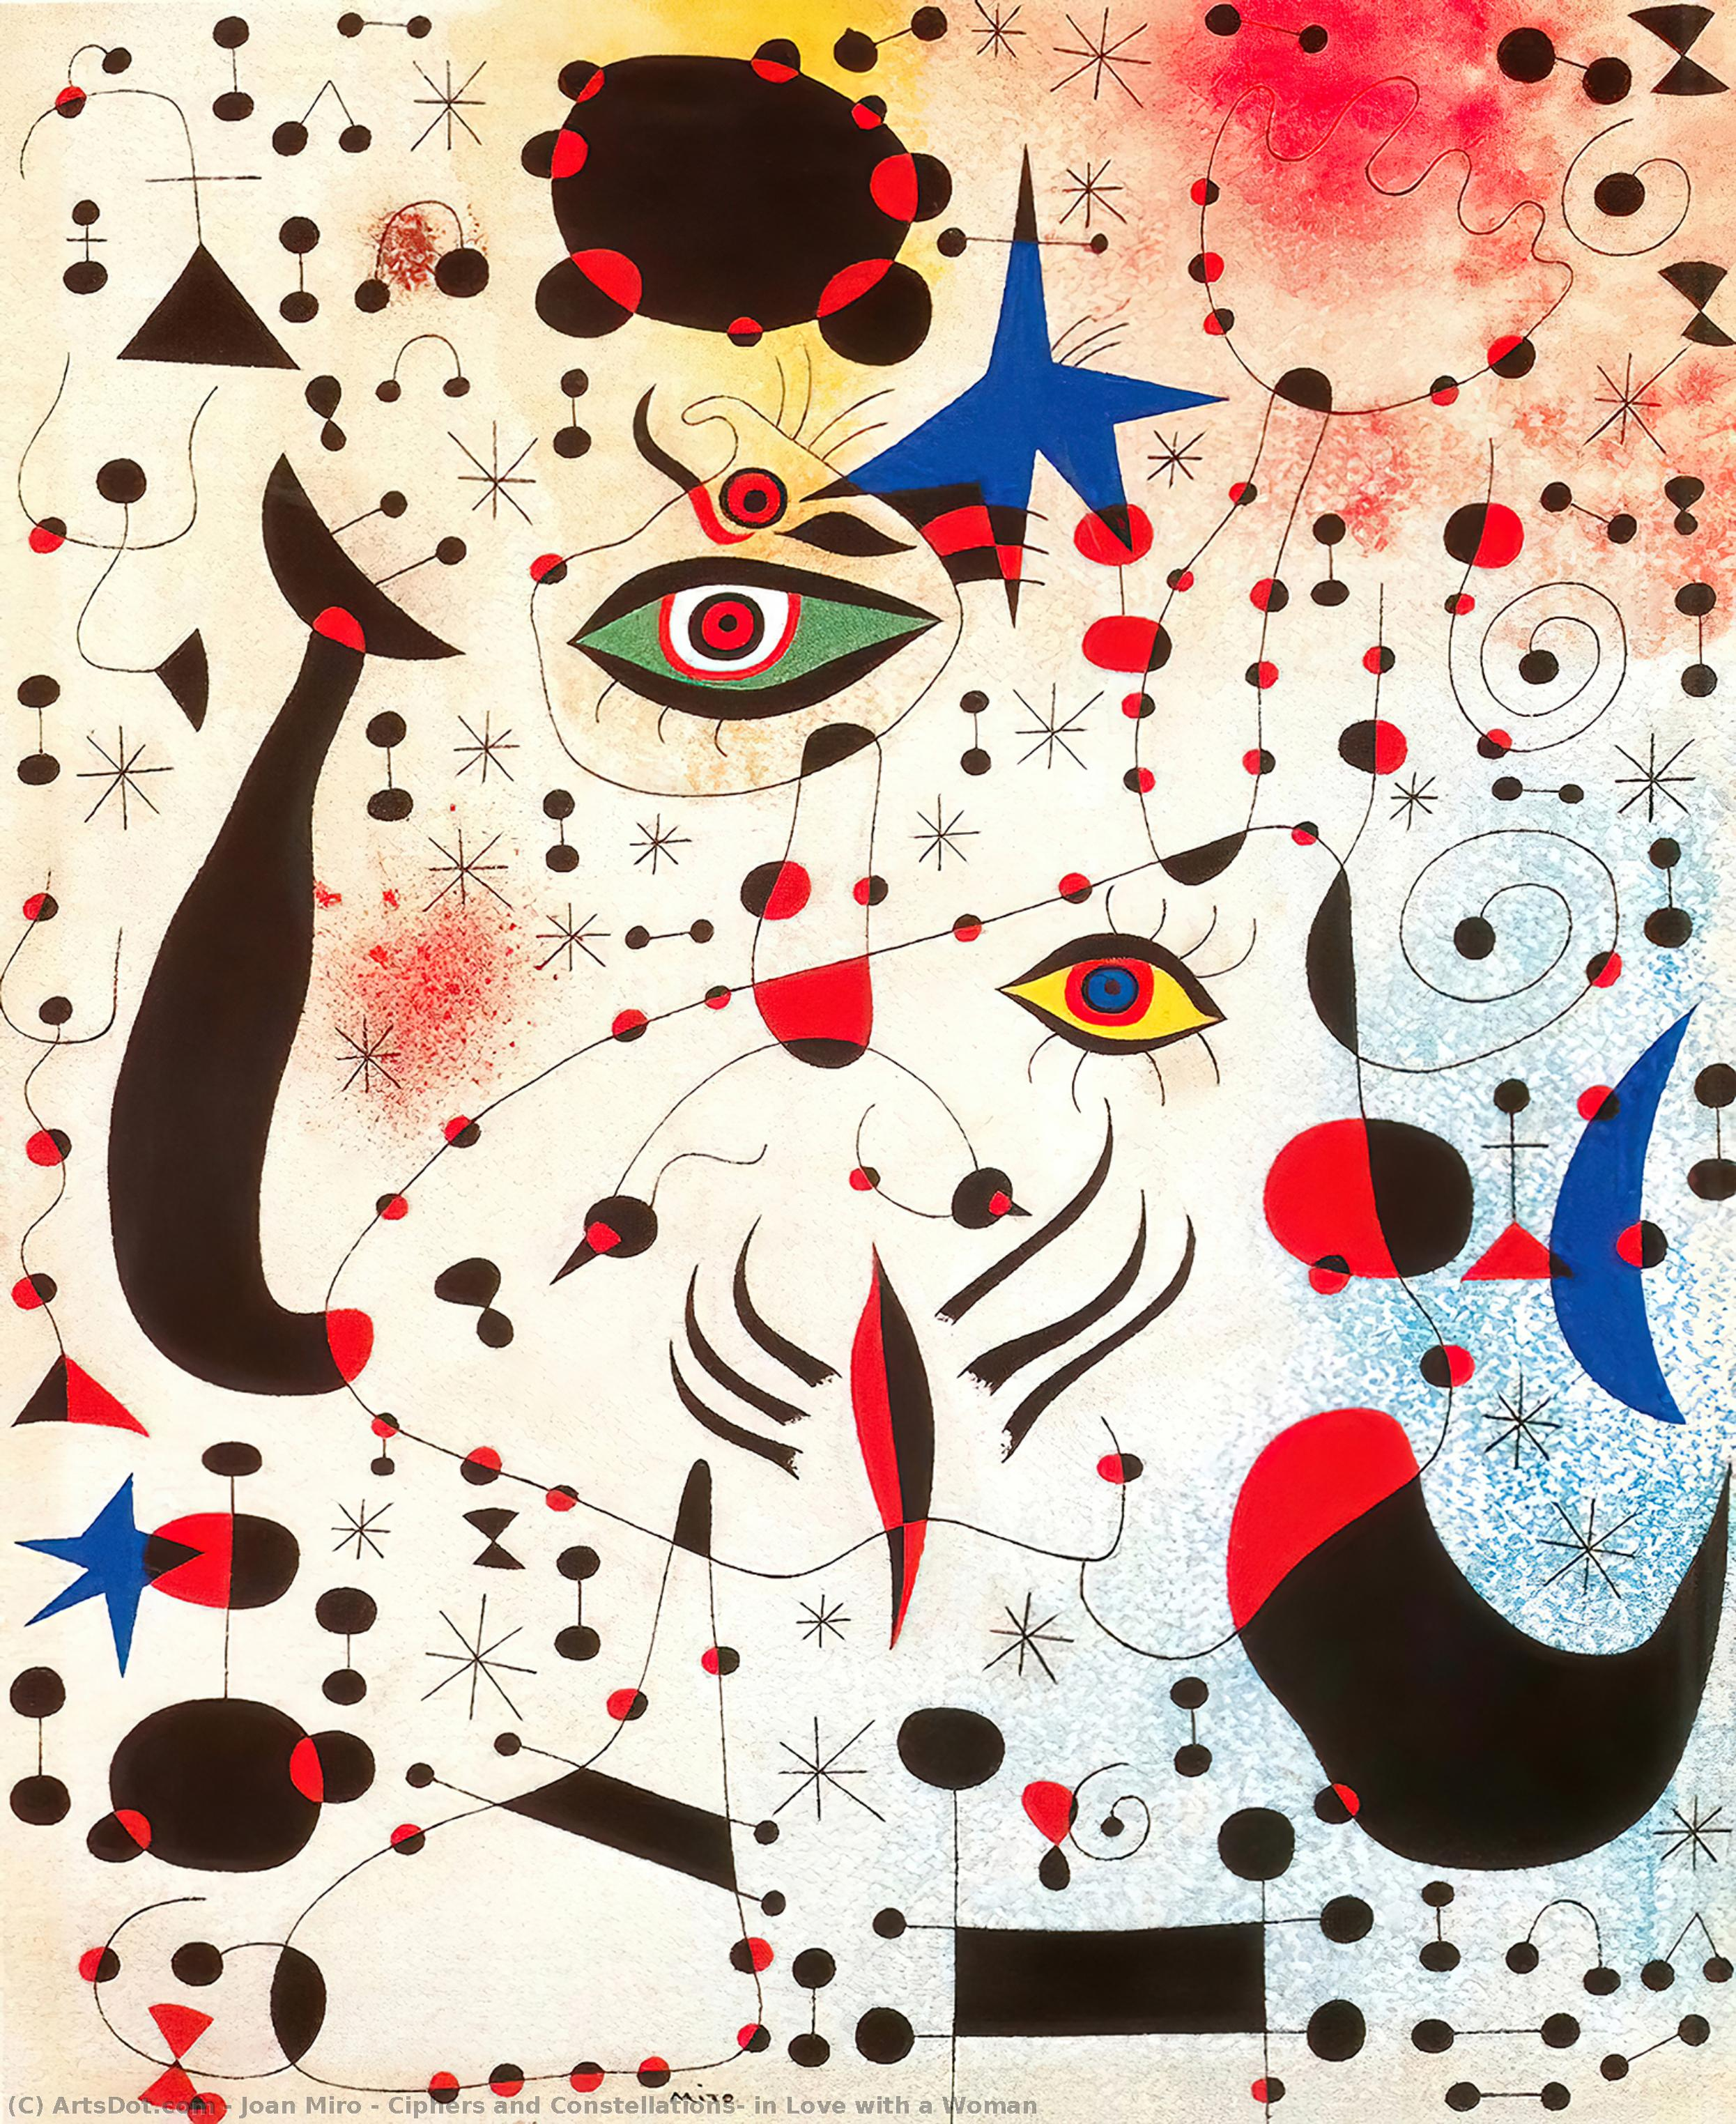 WikiOO.org - Enciclopedia of Fine Arts - Pictura, lucrări de artă Joan Miro - Ciphers and Constellations, in Love with a Woman